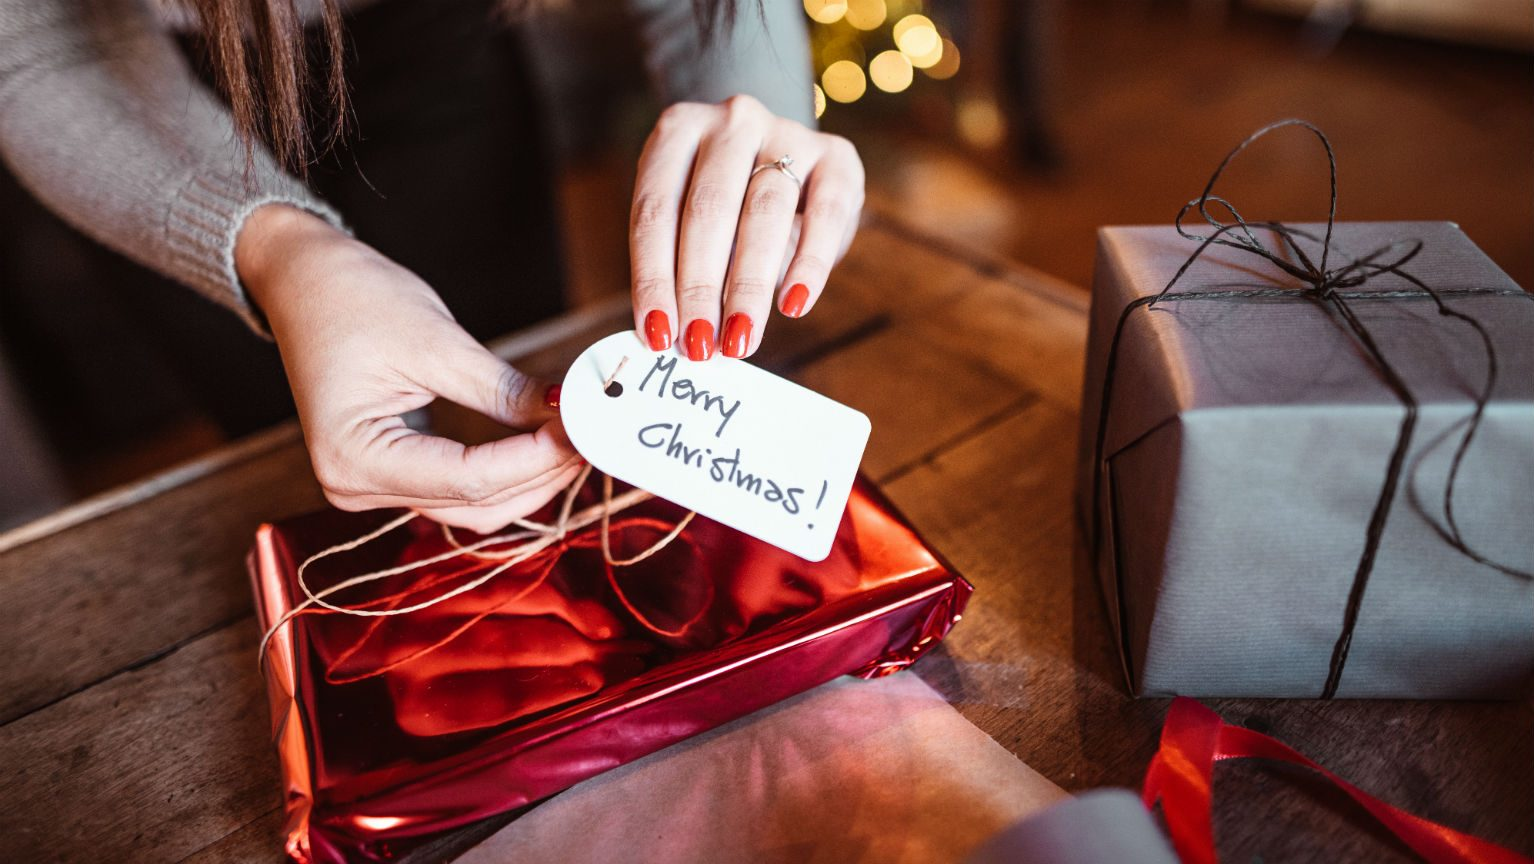 Presents with Merry Christmas tag